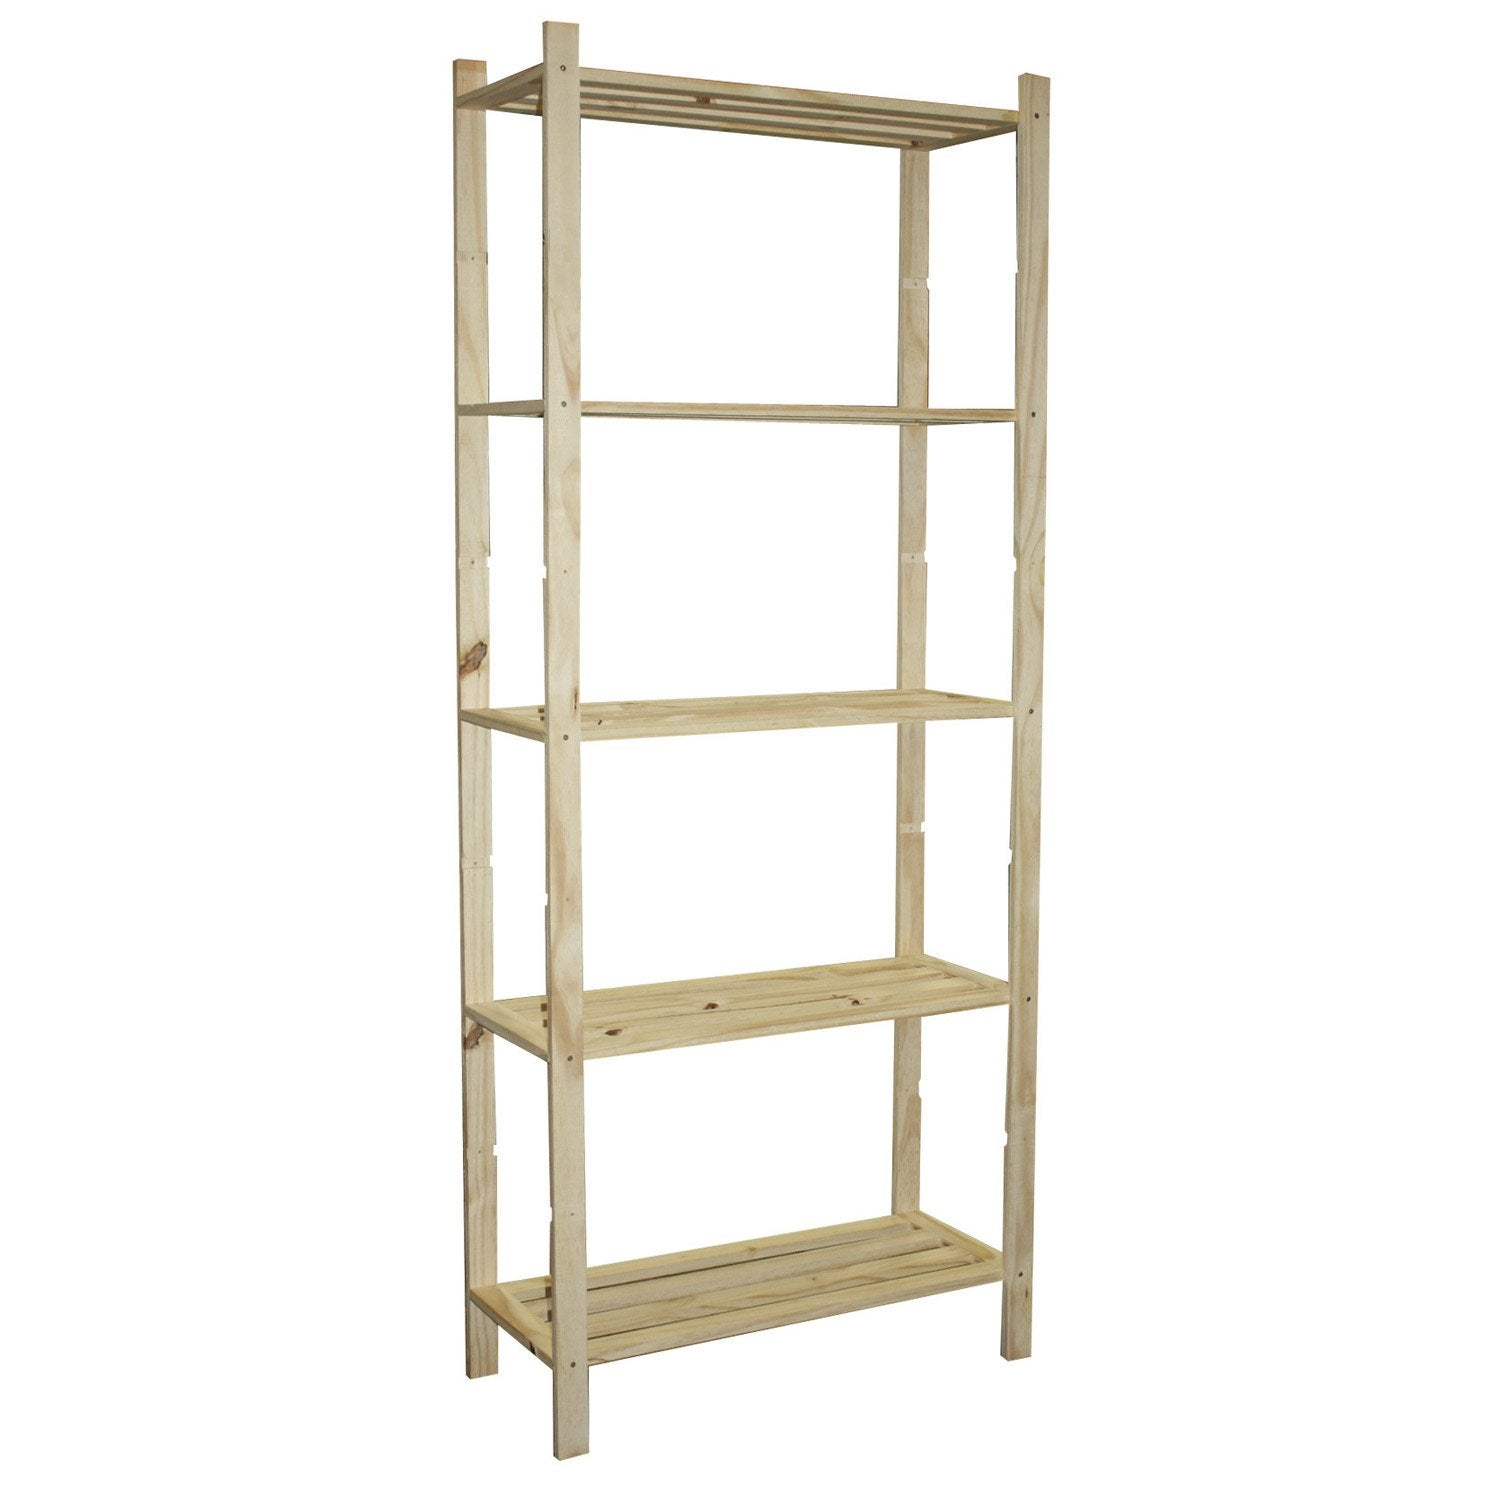 Etag re en pin 5 tablettes lattes l70xh170xp30cm leroy merlin - Etagere leroy merlin ...